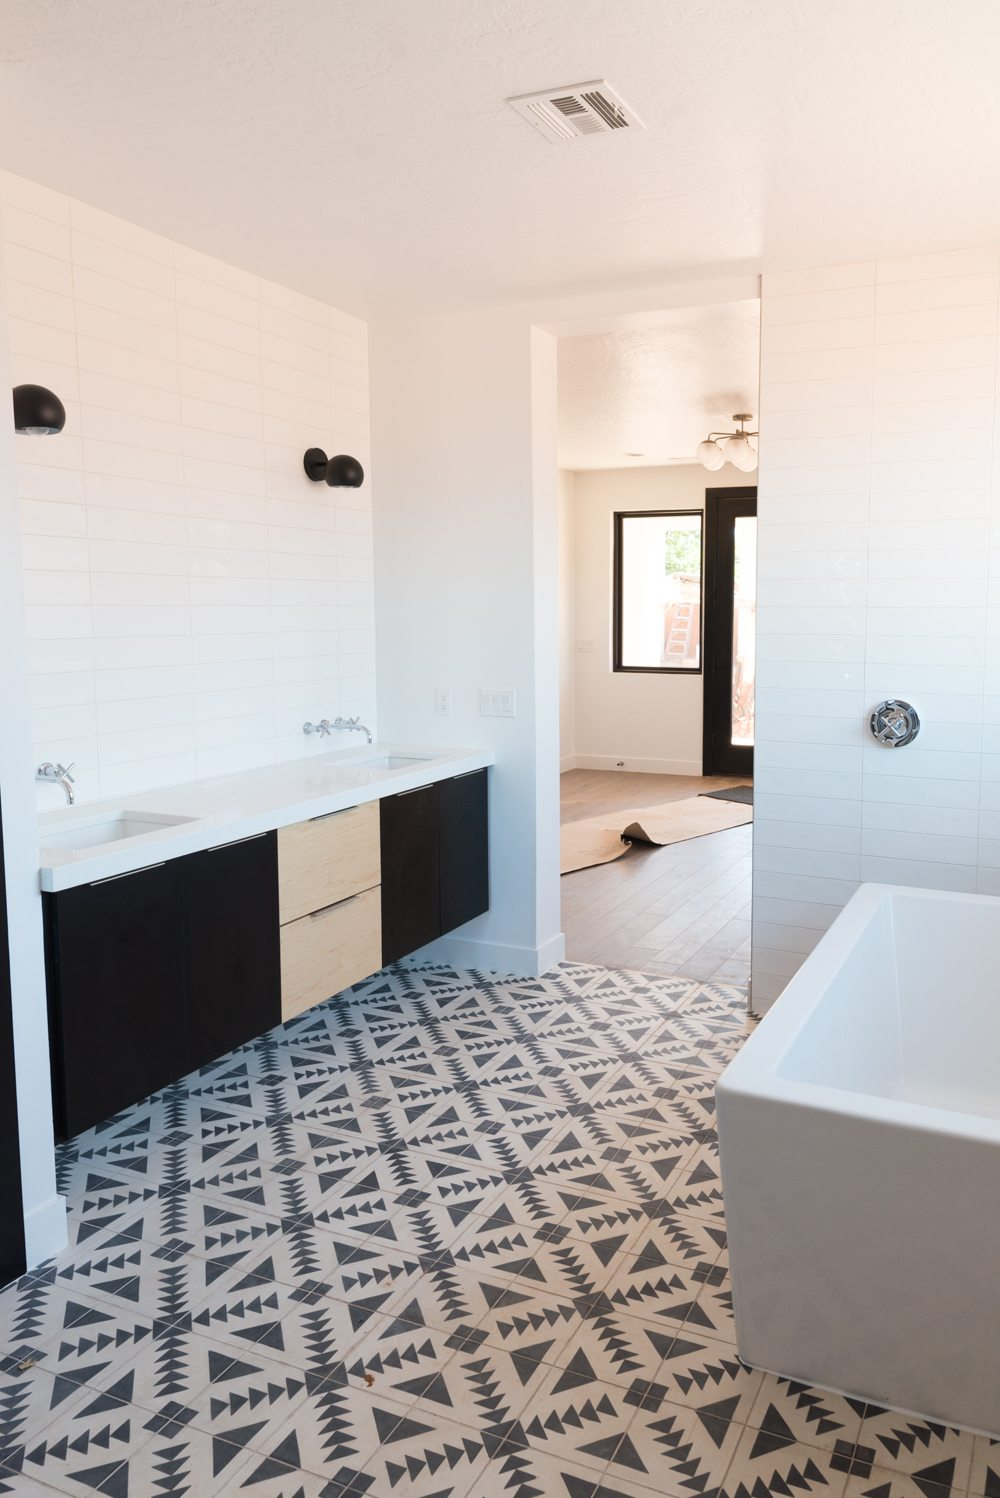 Where To Get Encaustic Cement Tile At The Price SERIOUSLY - Faux encaustic tile